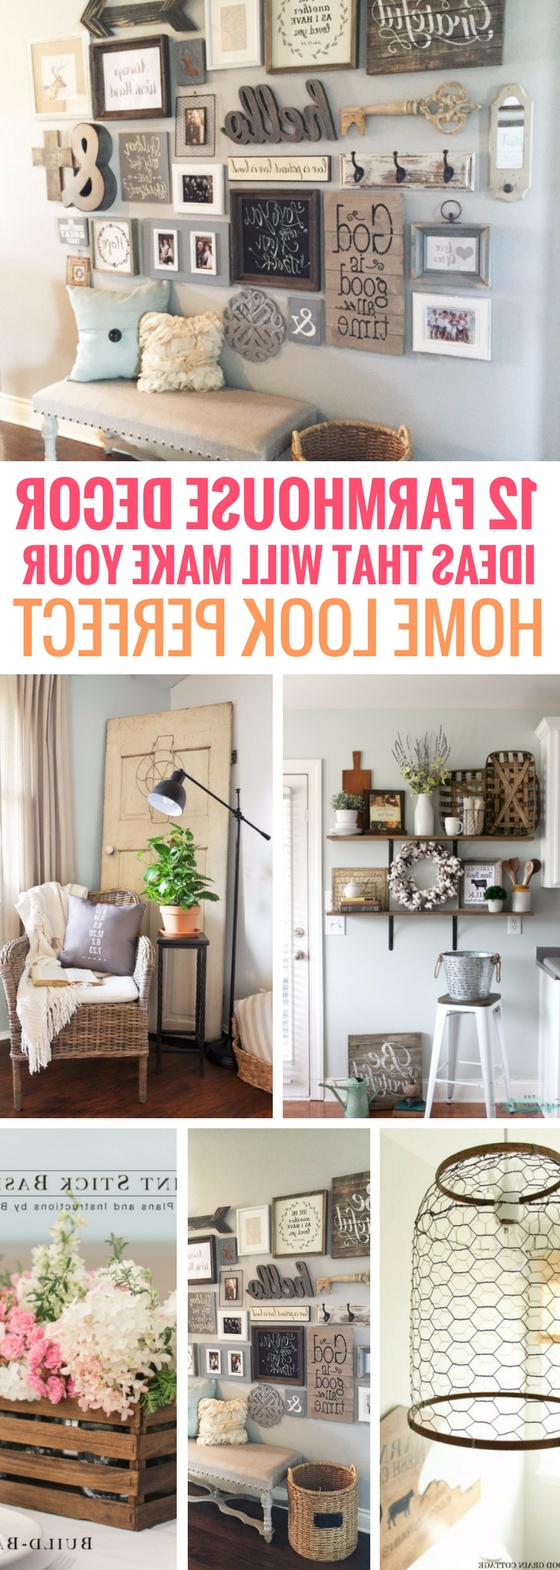 12 Farmhouse Decor Ideas That Will Make Your Home Look